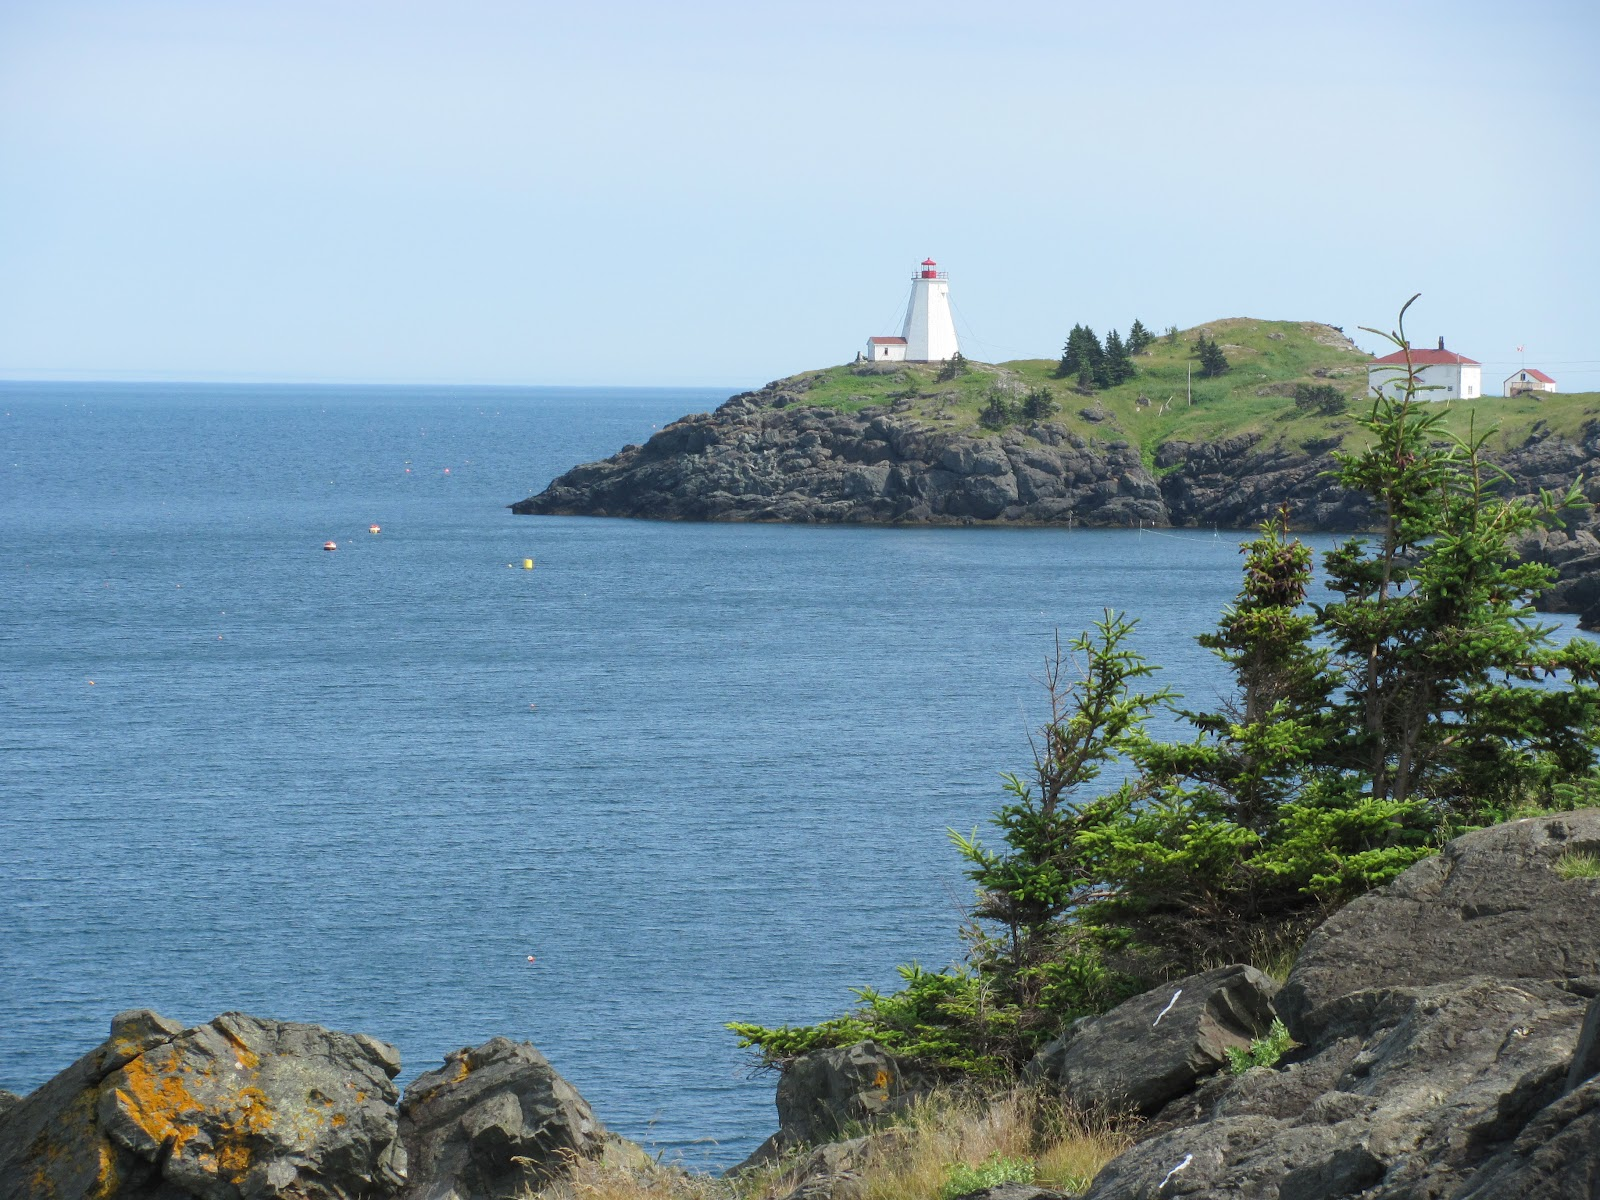 Carl and I both agree that this is probably the most beautiful spot we have ever c&ed at. We quickly set up our tent and went to explore the island! & Funky Adventures: June 23rd: Grand Manan and Fundy